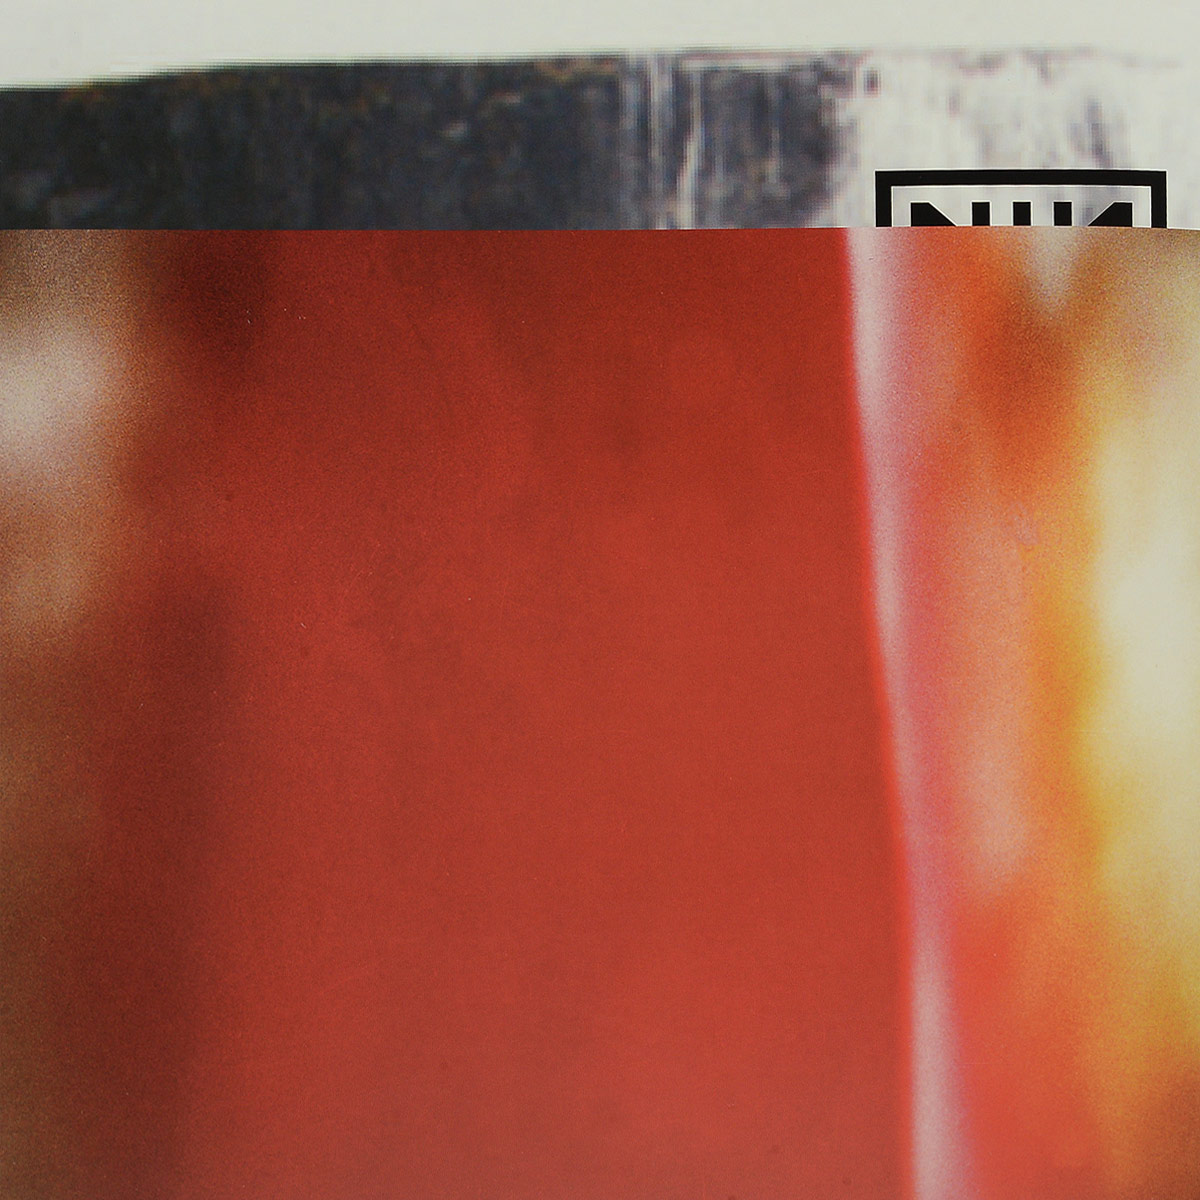 Nine Inch Nails Nine Inch Nails. The Fragile (3 LP) new 7 inch